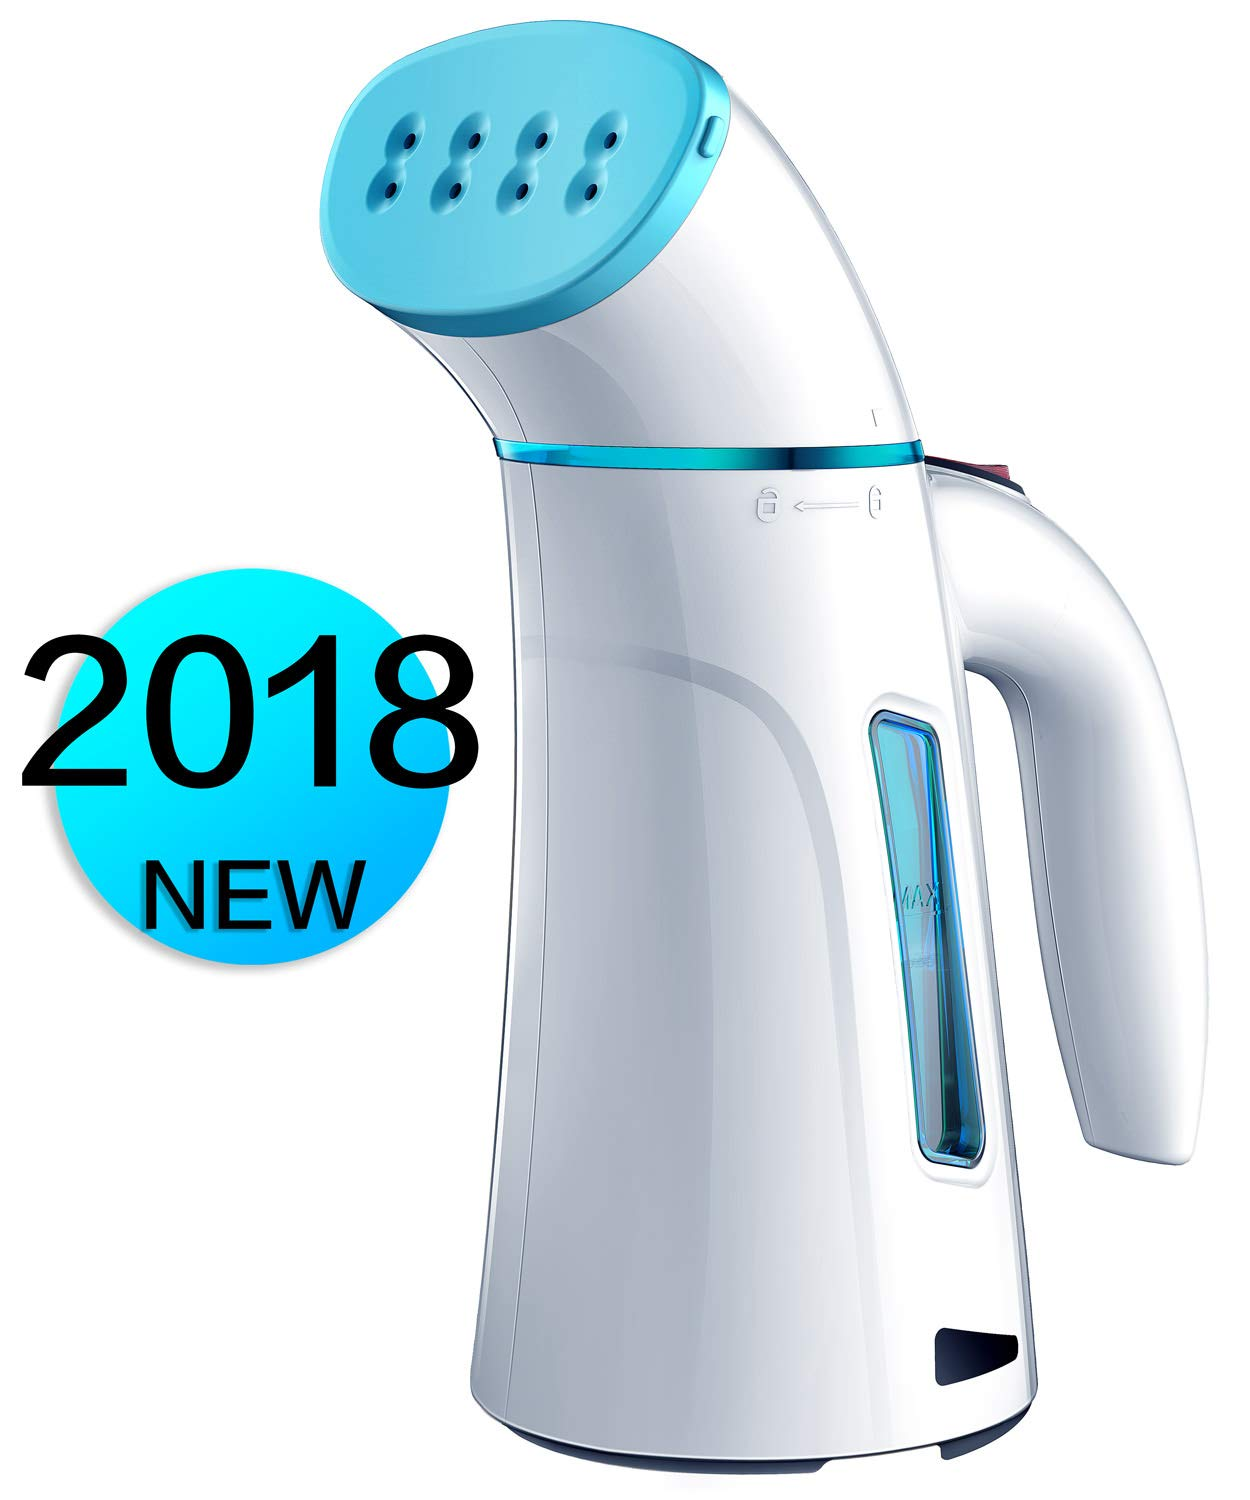 Steamer Clothes Steamer, Handheld Garment Steamer Clothing Steamer. Mini Travel Steamer Portable Steam Iron Hand Held Hilife Steamer for Clothes